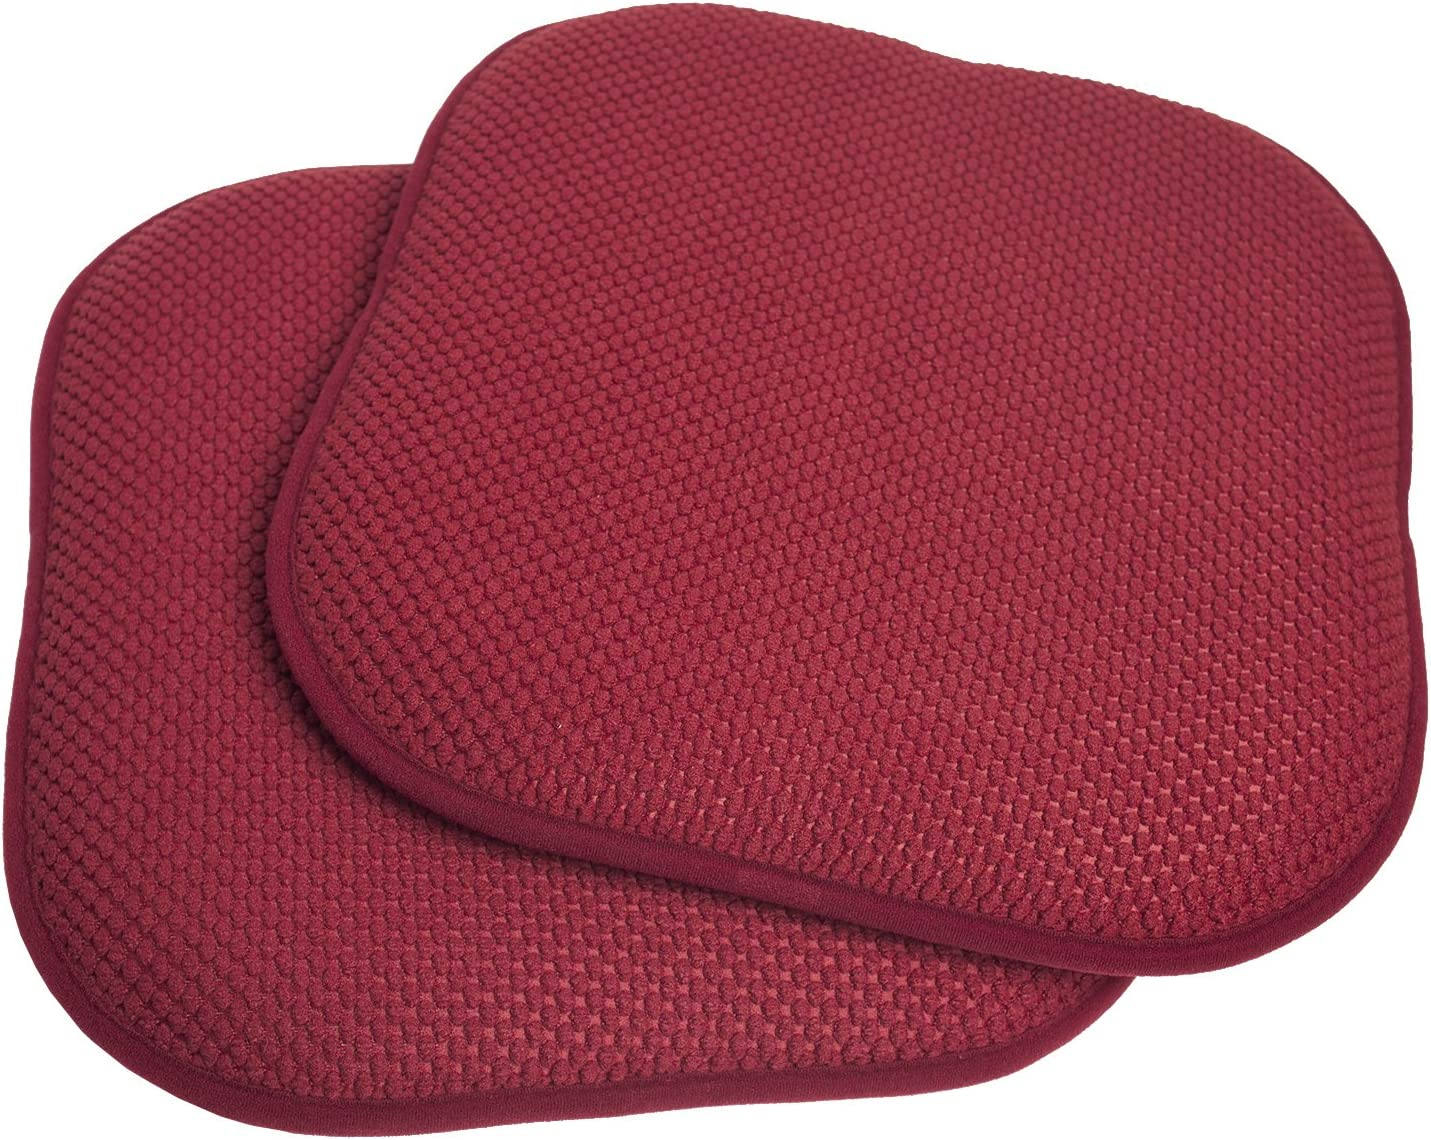 Sweet Home Collection Memory Foam Honeycomb Nonslip Back Chair/Seat Cushion Pad (2 Pack), 16 x16, Wine